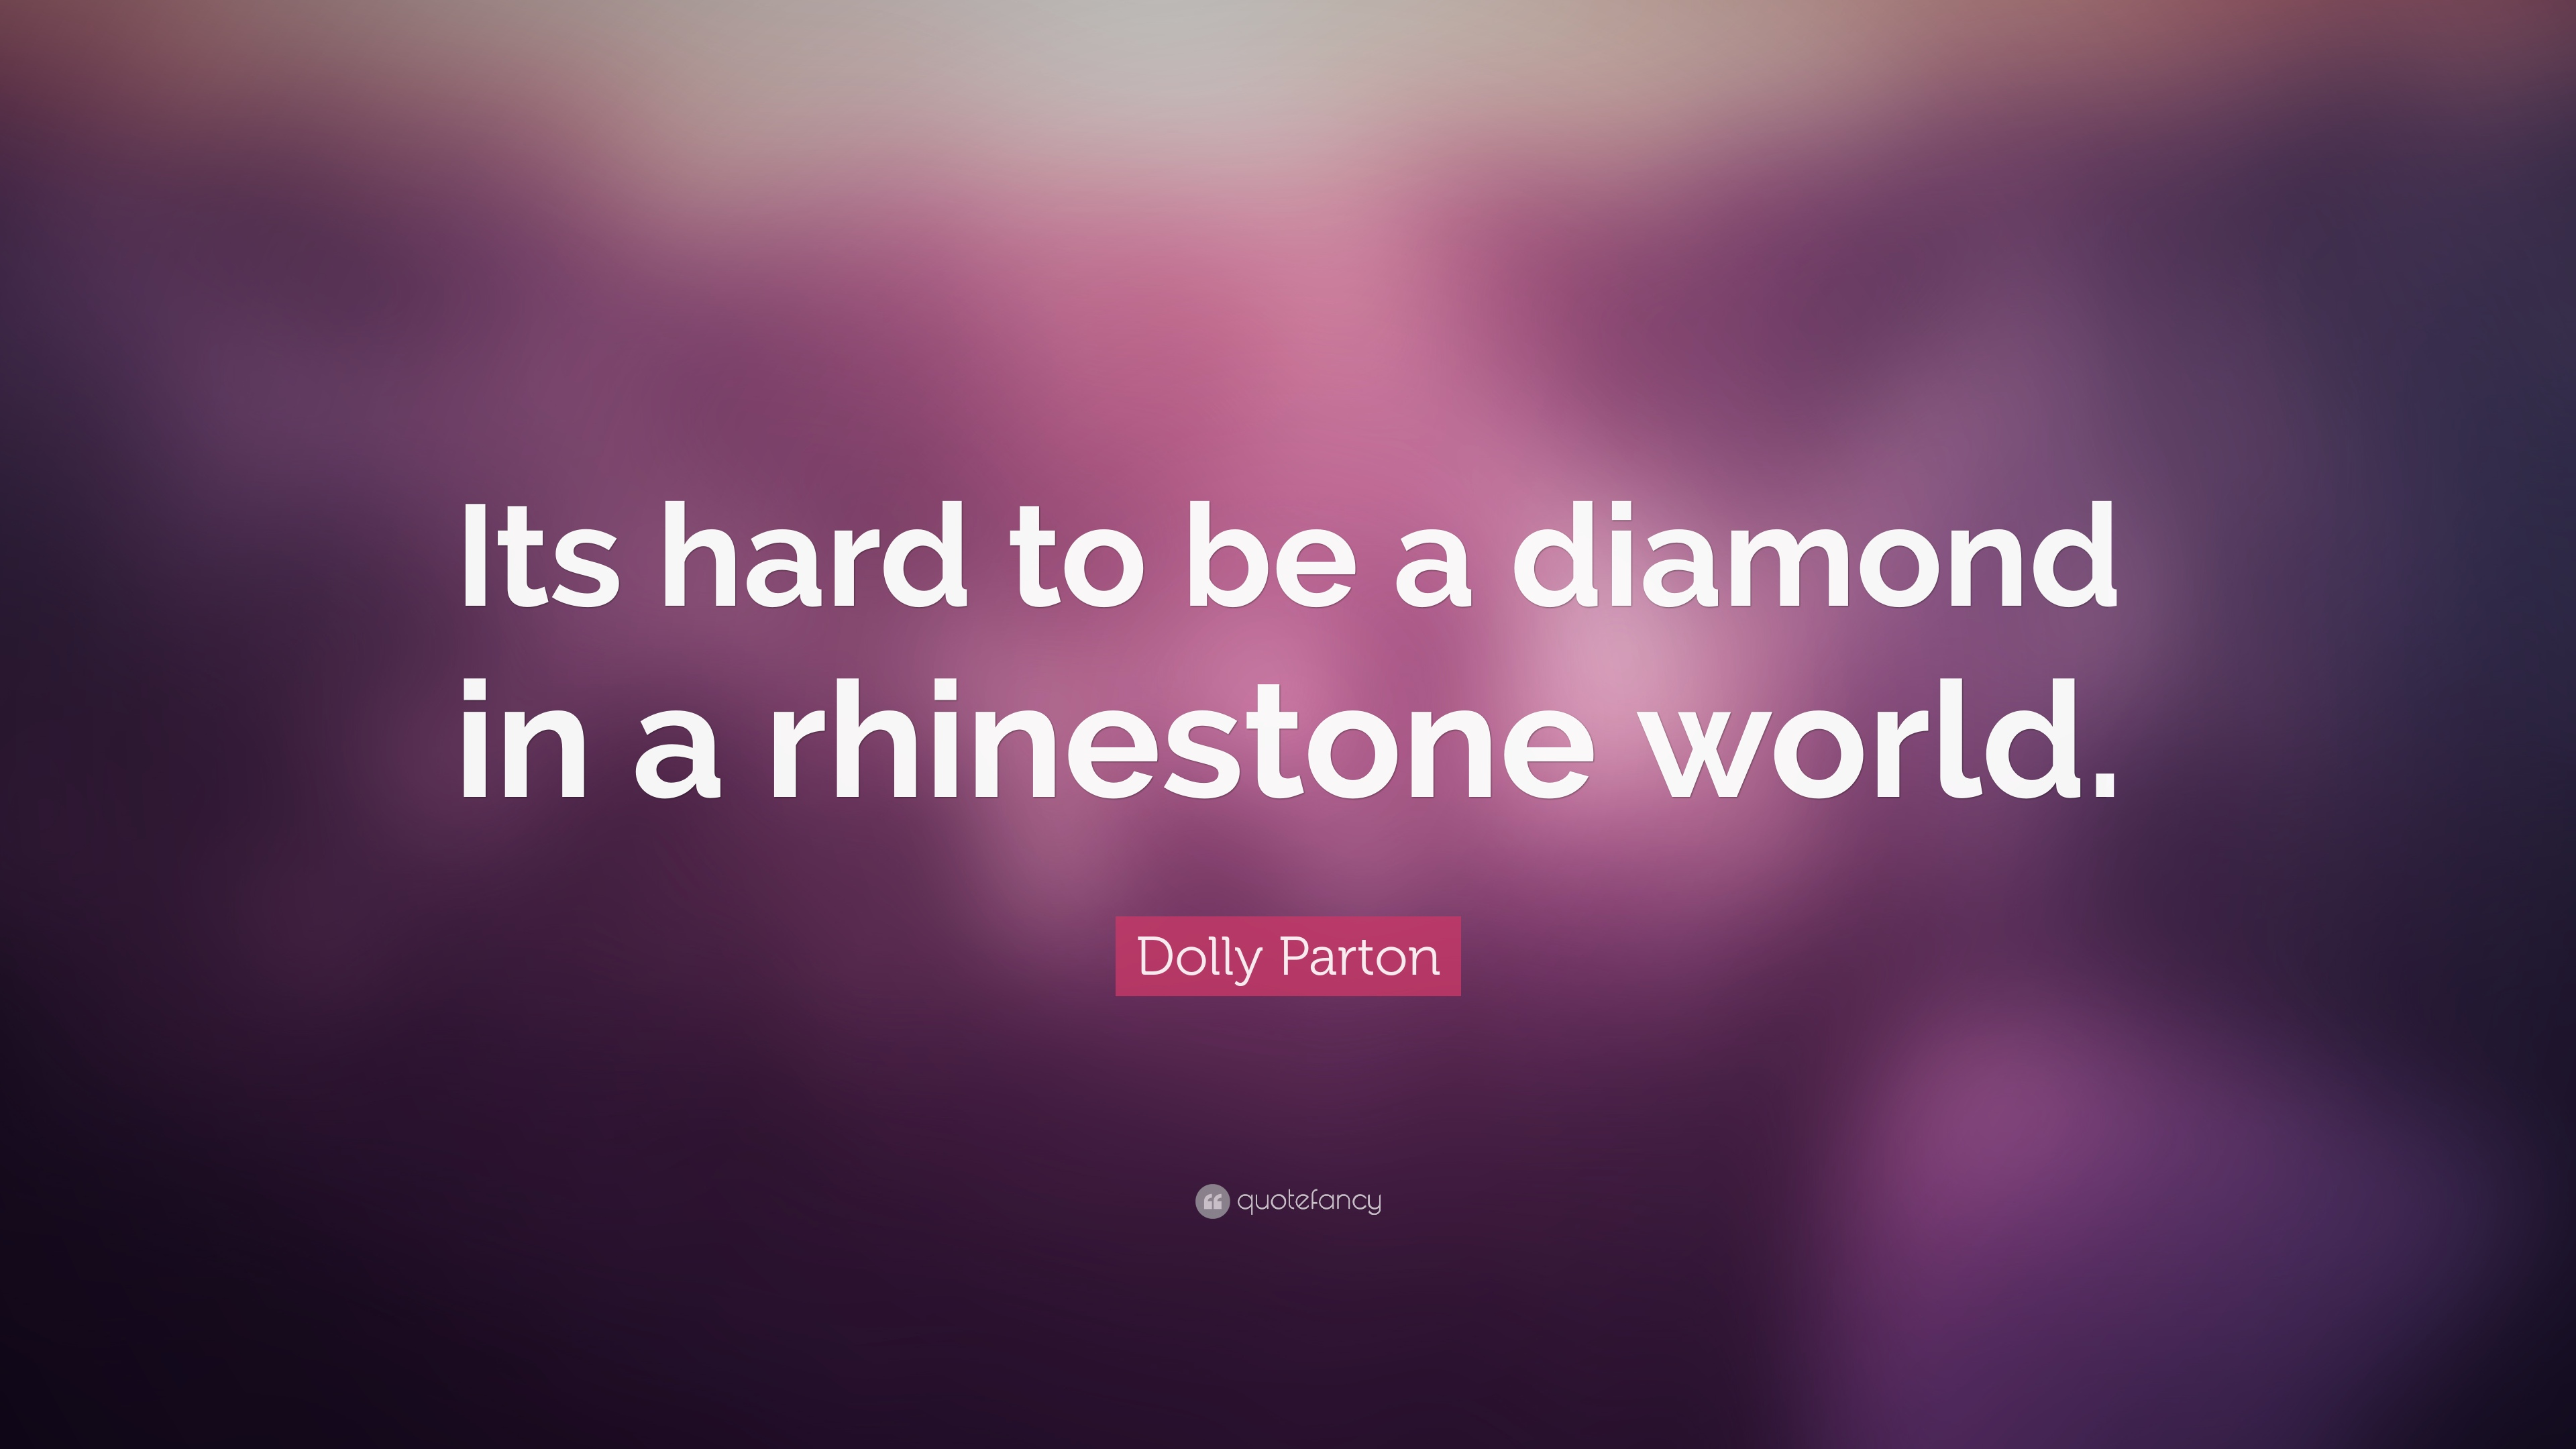 mae nj quote diamond jewelers west dream